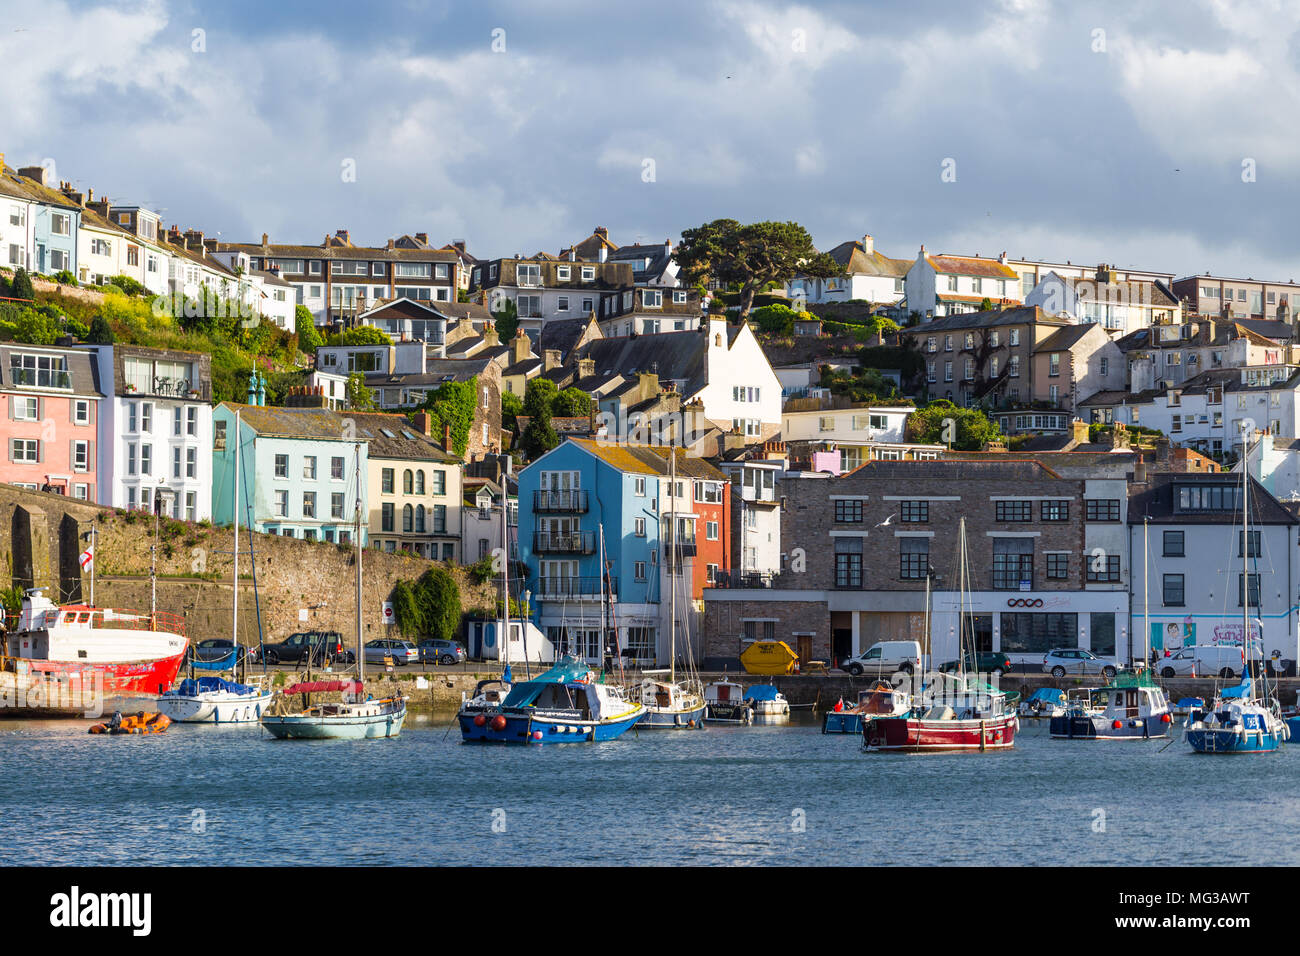 Brixham Harbour, seaside, with boats and colourful buildings, UK, England - Stock Image